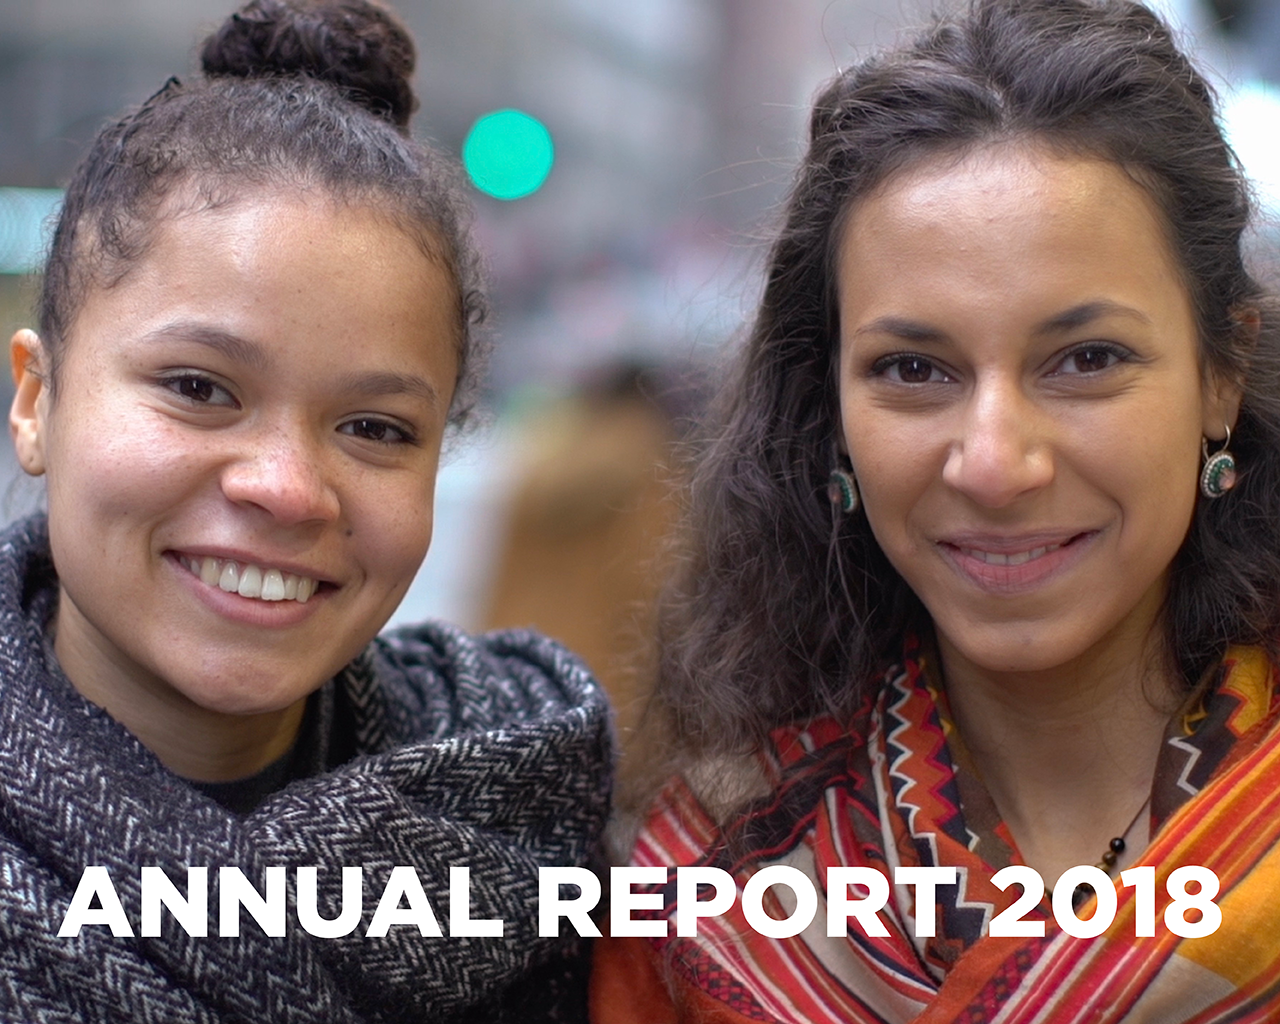 Guttmacher Institute - 2018 Annual ReportL: The Next 50 Years